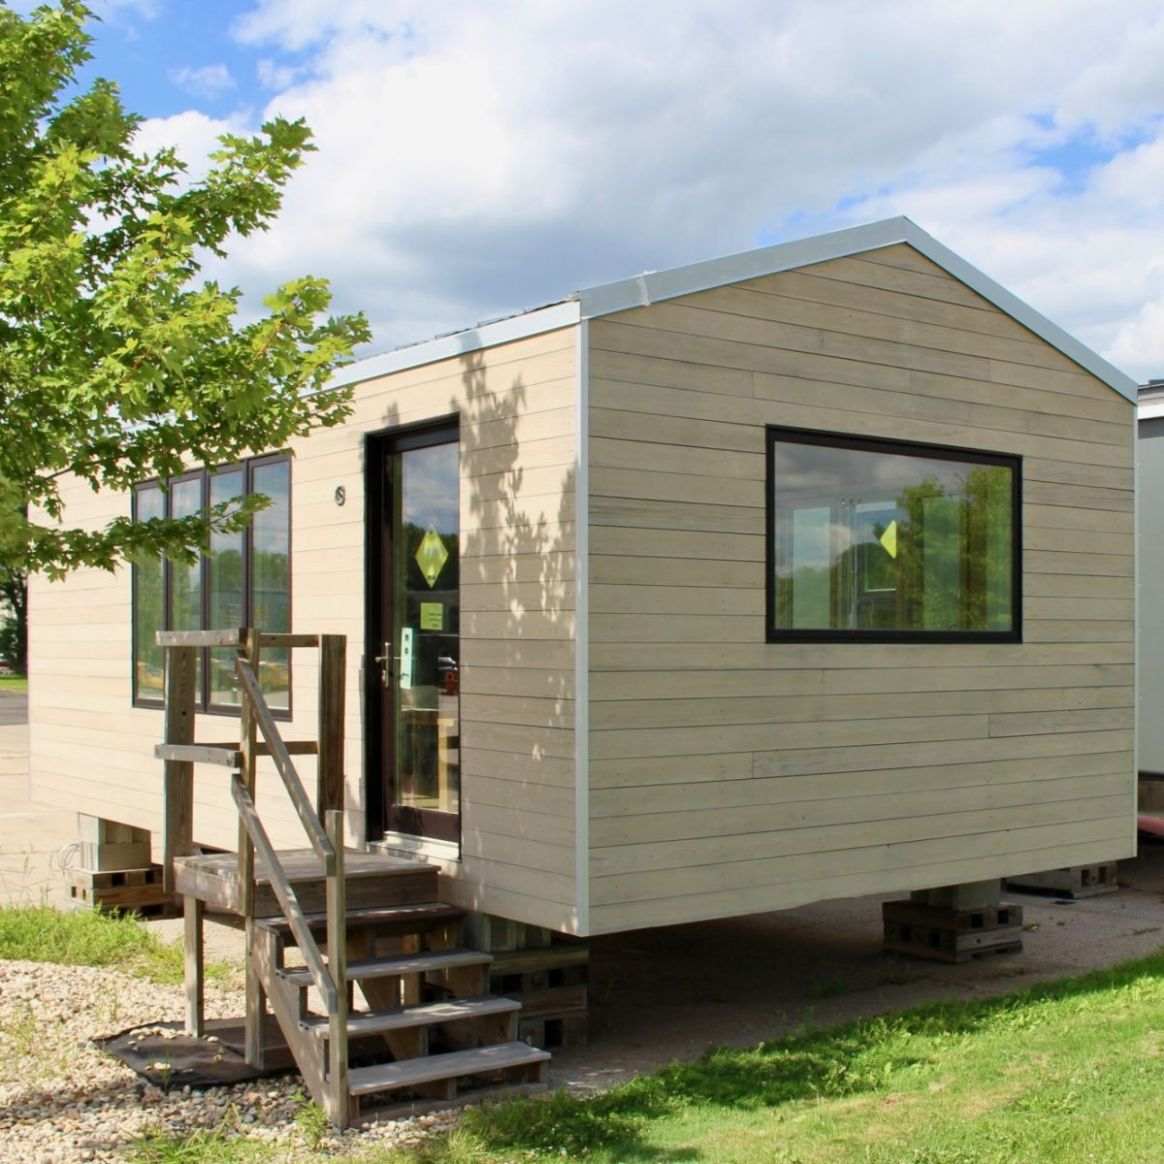 Minim Tiny House – Finish yourself! - Tiny House for Sale in Madison,  Wisconsin - Tiny House Listings